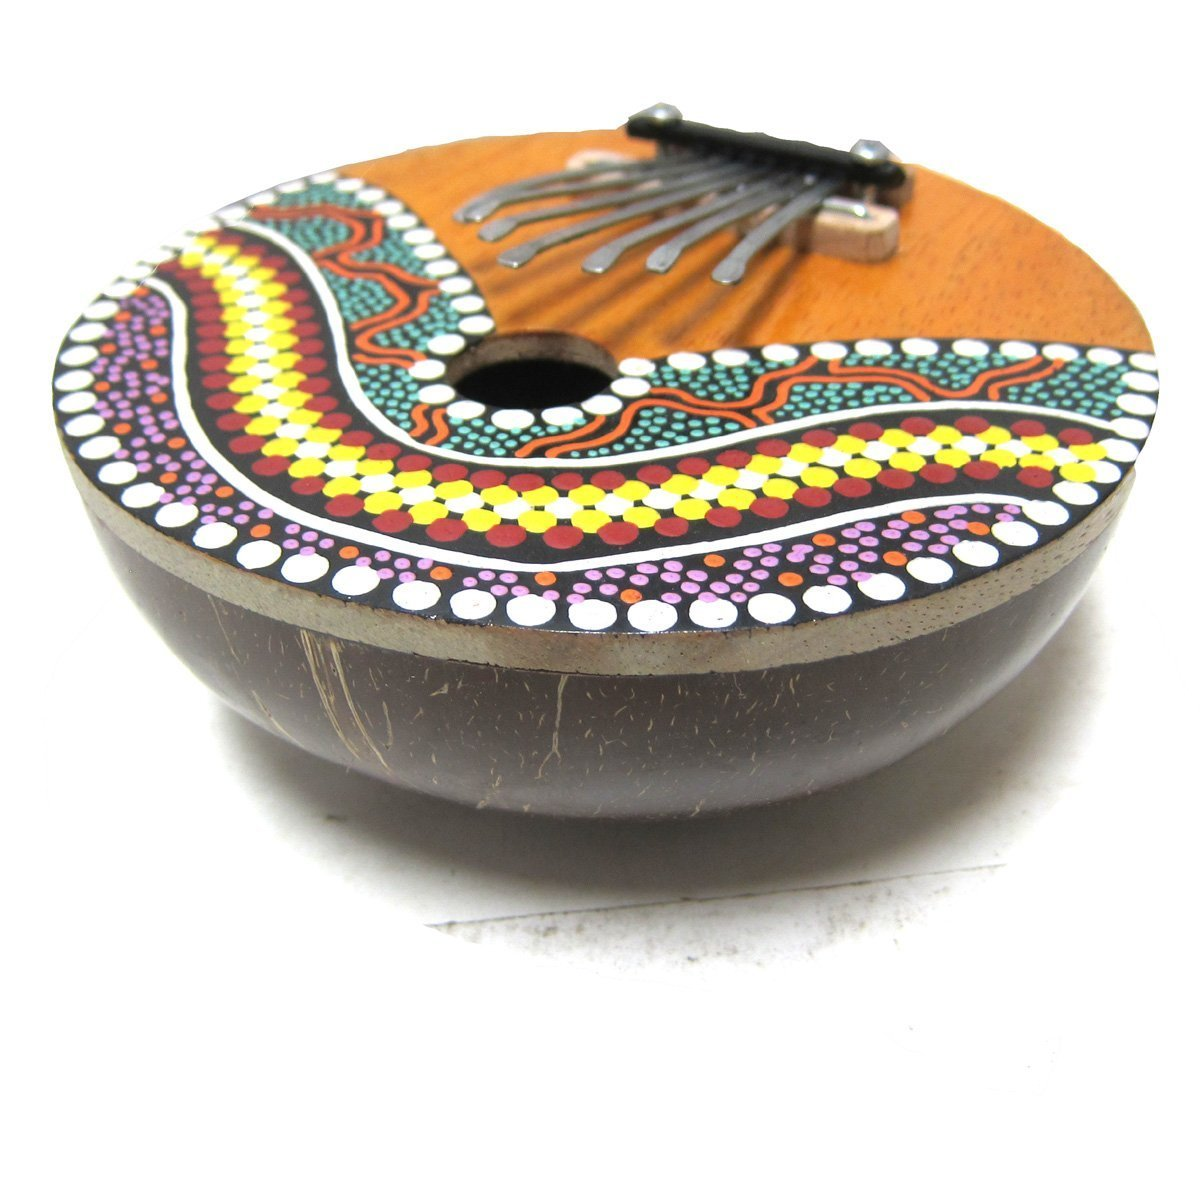 Kalimba Thumb Piano 7 keys Tunable Coconut Shell Painted Finger Thumb Piano Mbira Kalimba Tines Original Wood Kalimba Hugh Tracey Marimba Percussion Musical Instrument by Bethlehem Gifts TM 4336351433